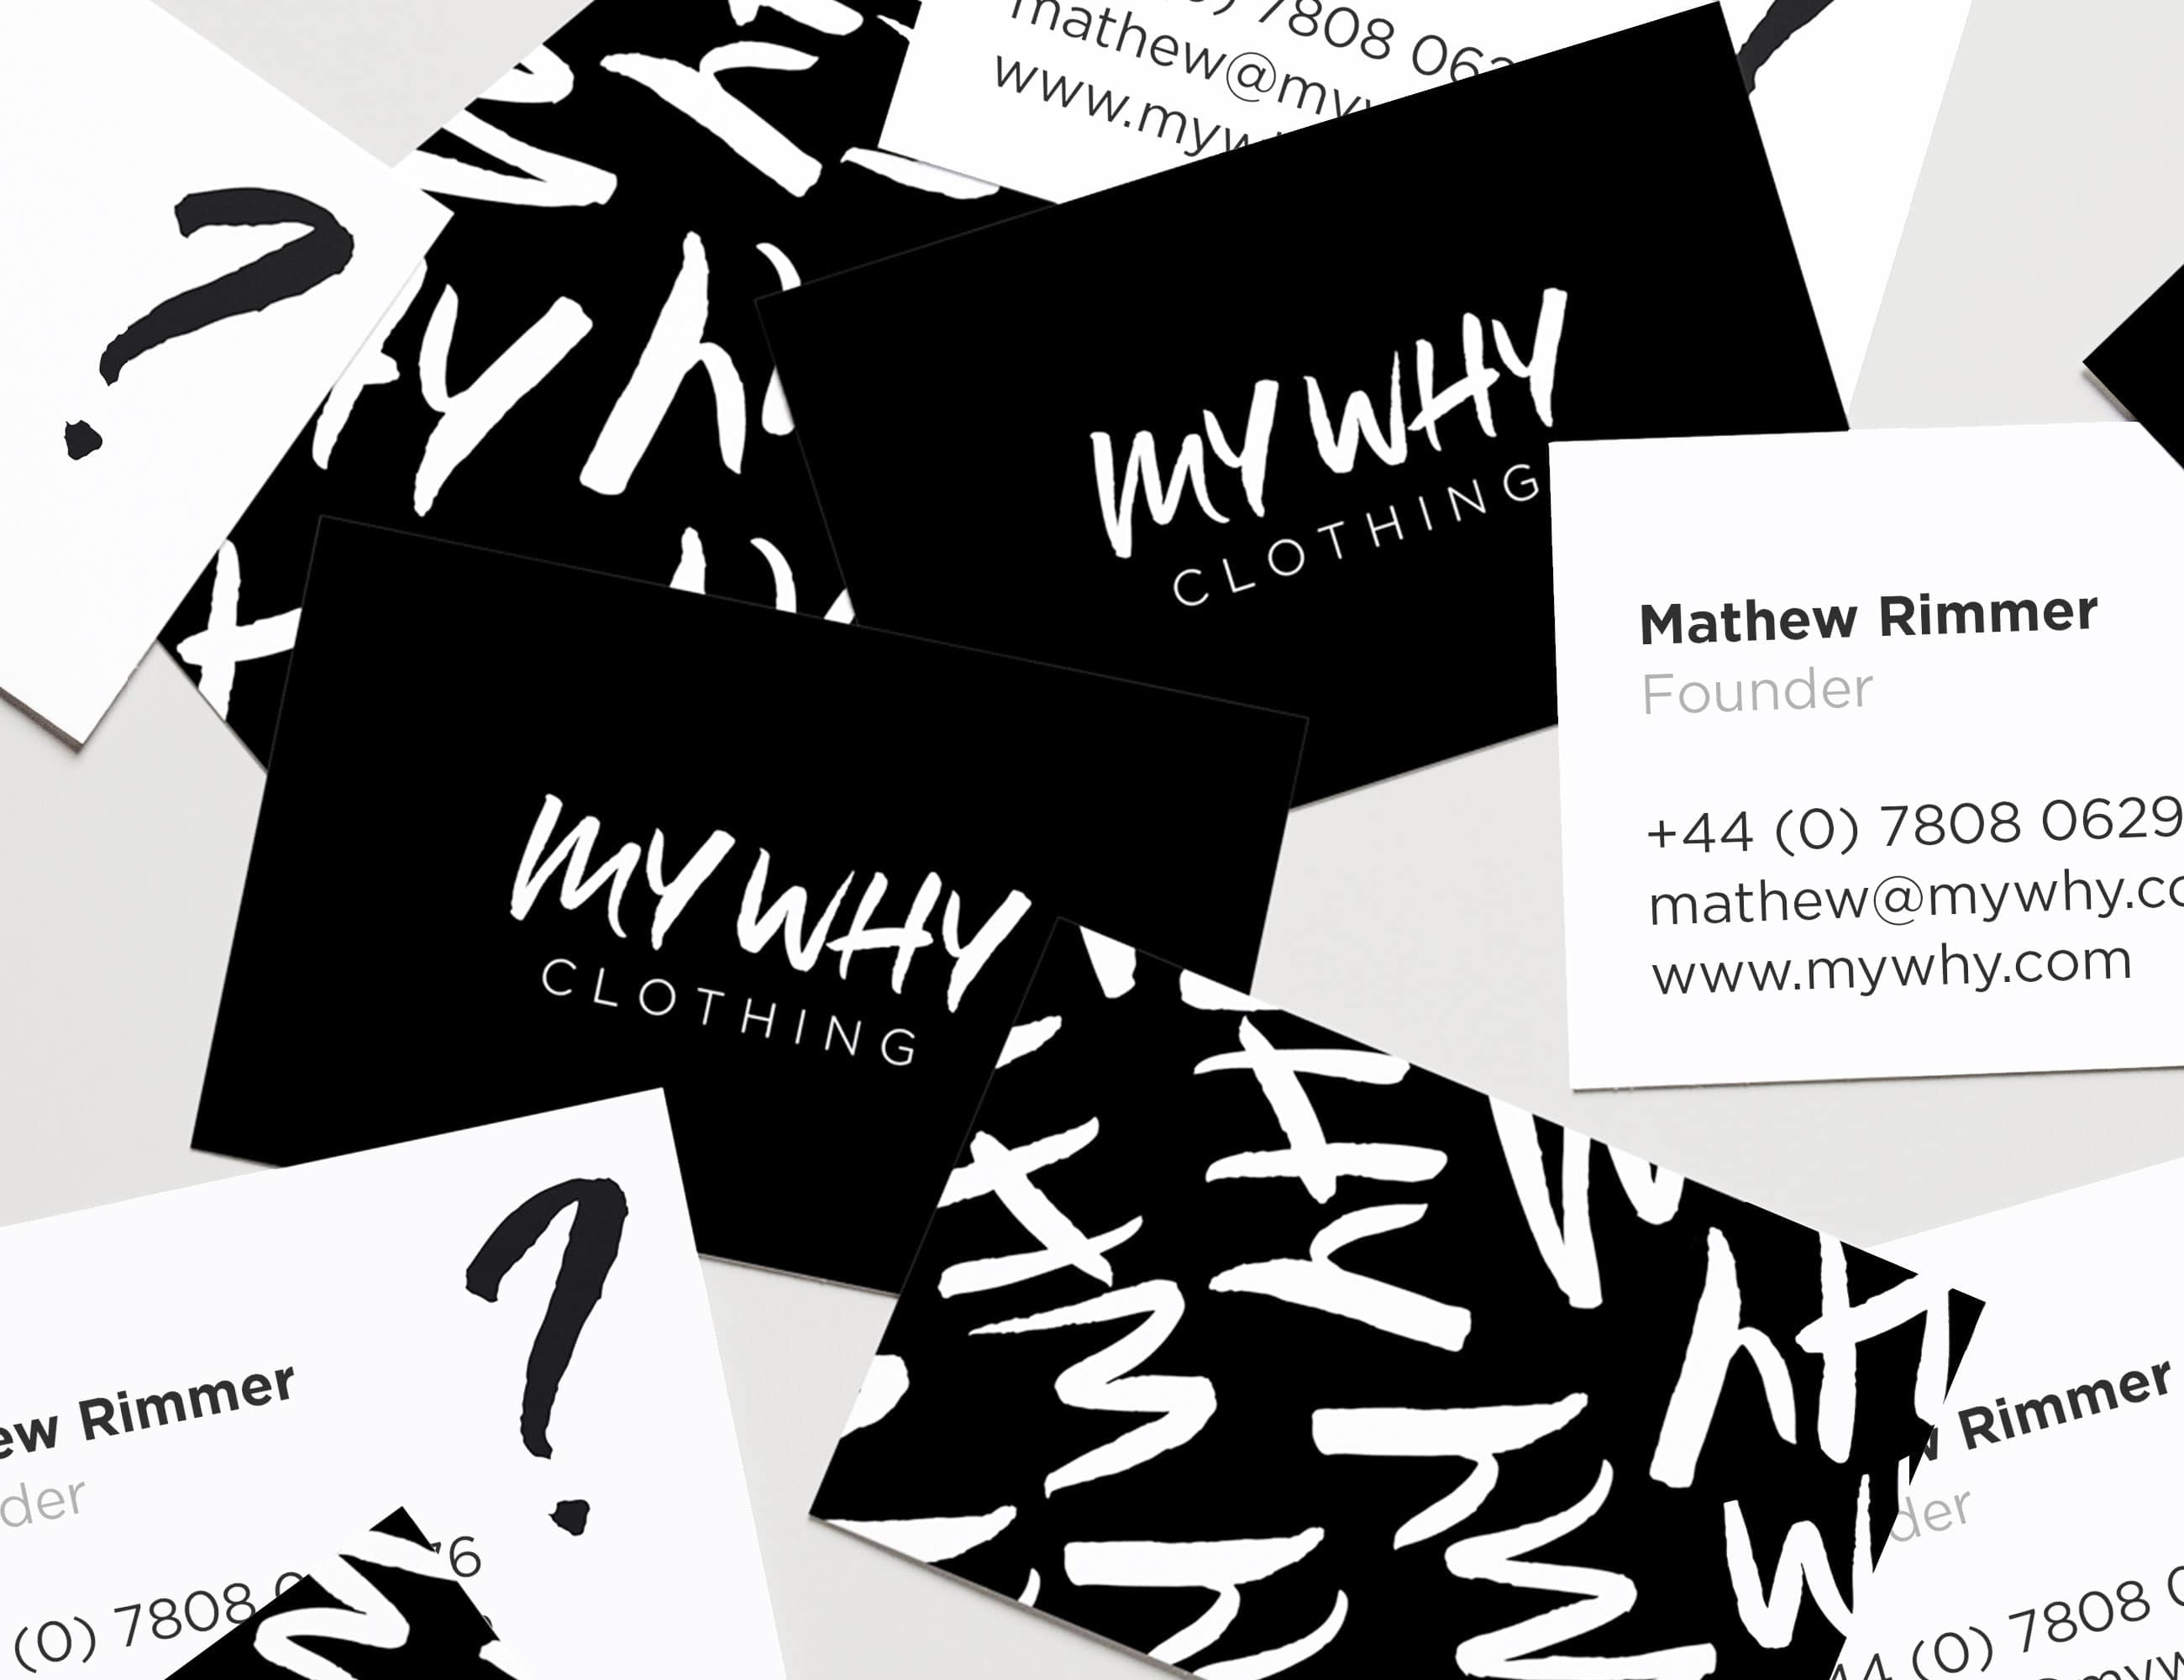 my-why-clothing-business-card-min – Liam Jackson Graphics